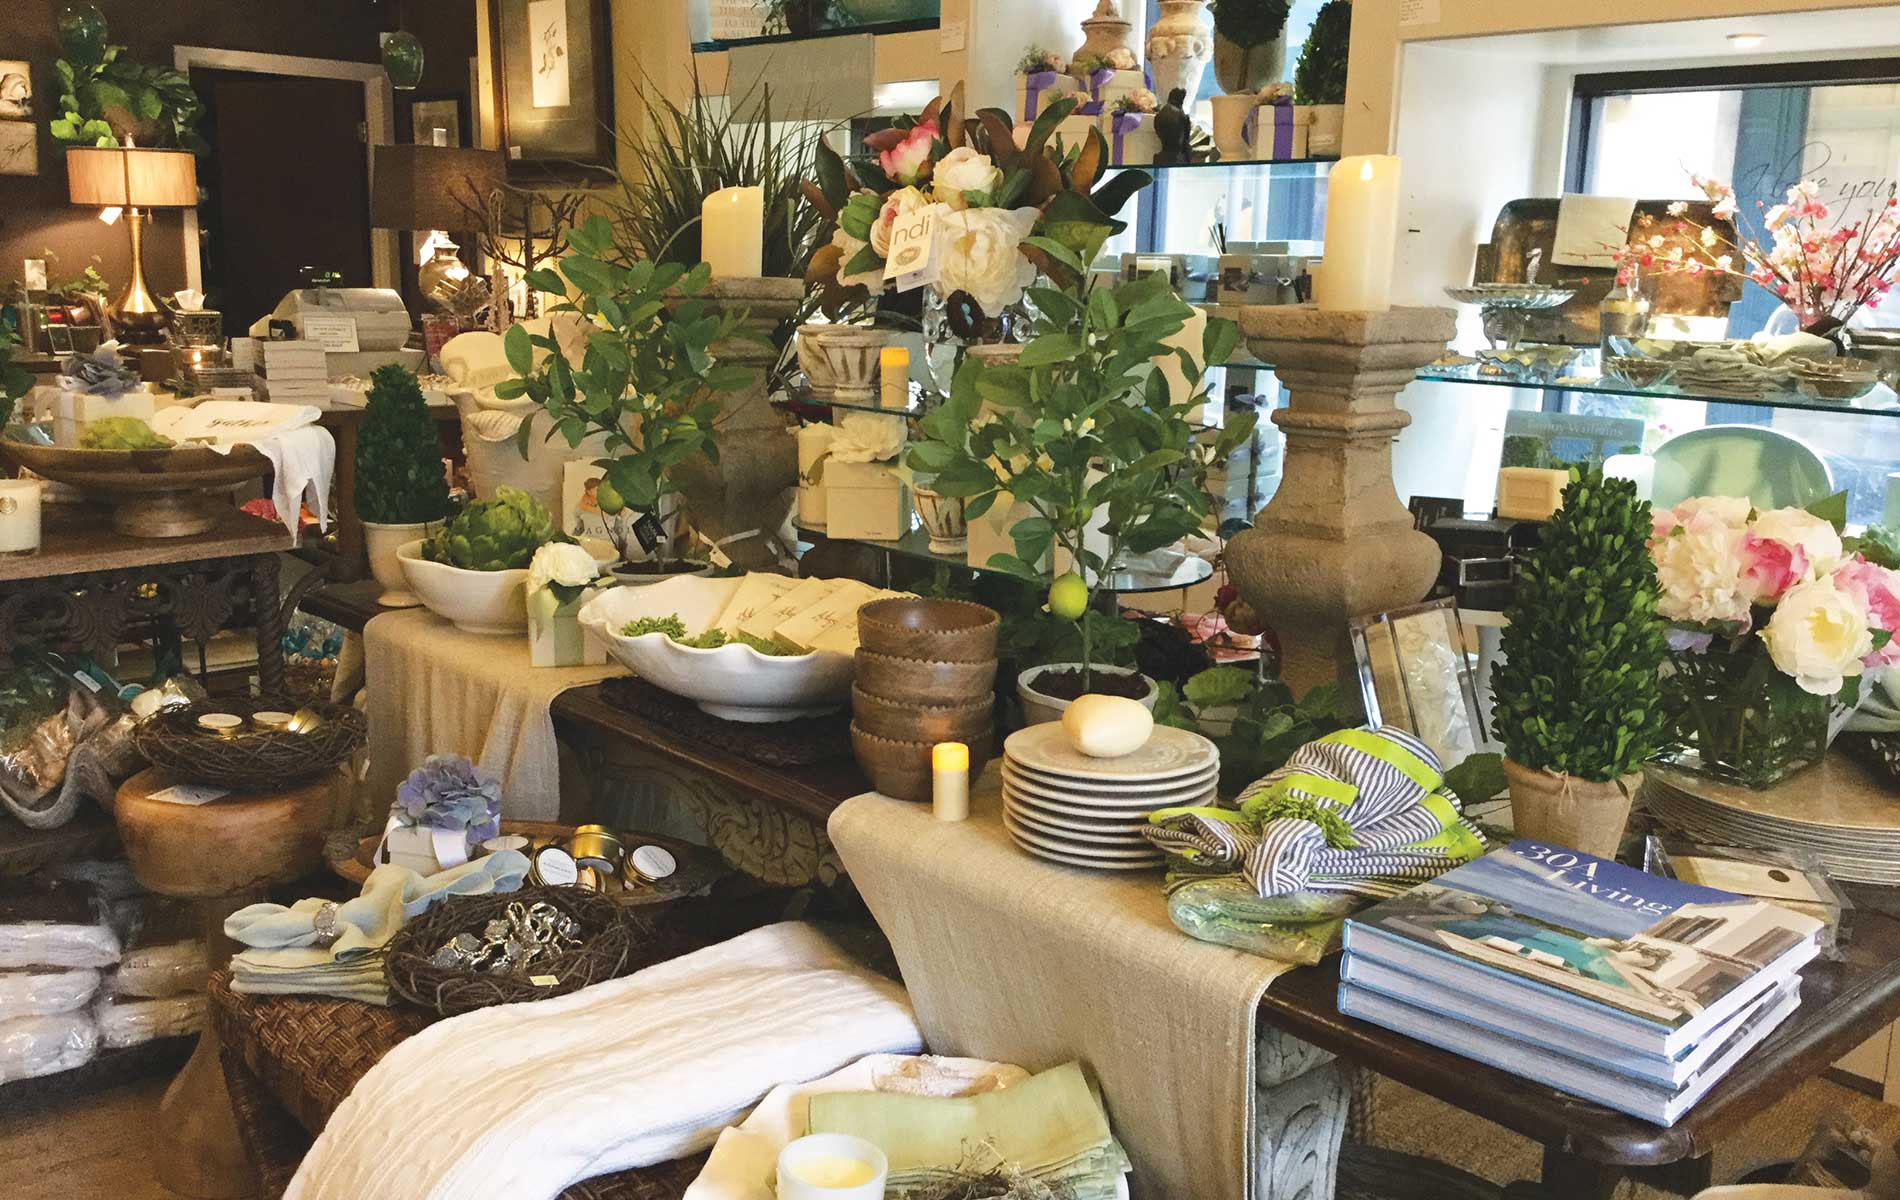 Magnolia House Lifestyle Store, located in the Grand Boulevard Town Centre in Miramar Beach, Florida, offers home decor, books, original artwork, and much more.